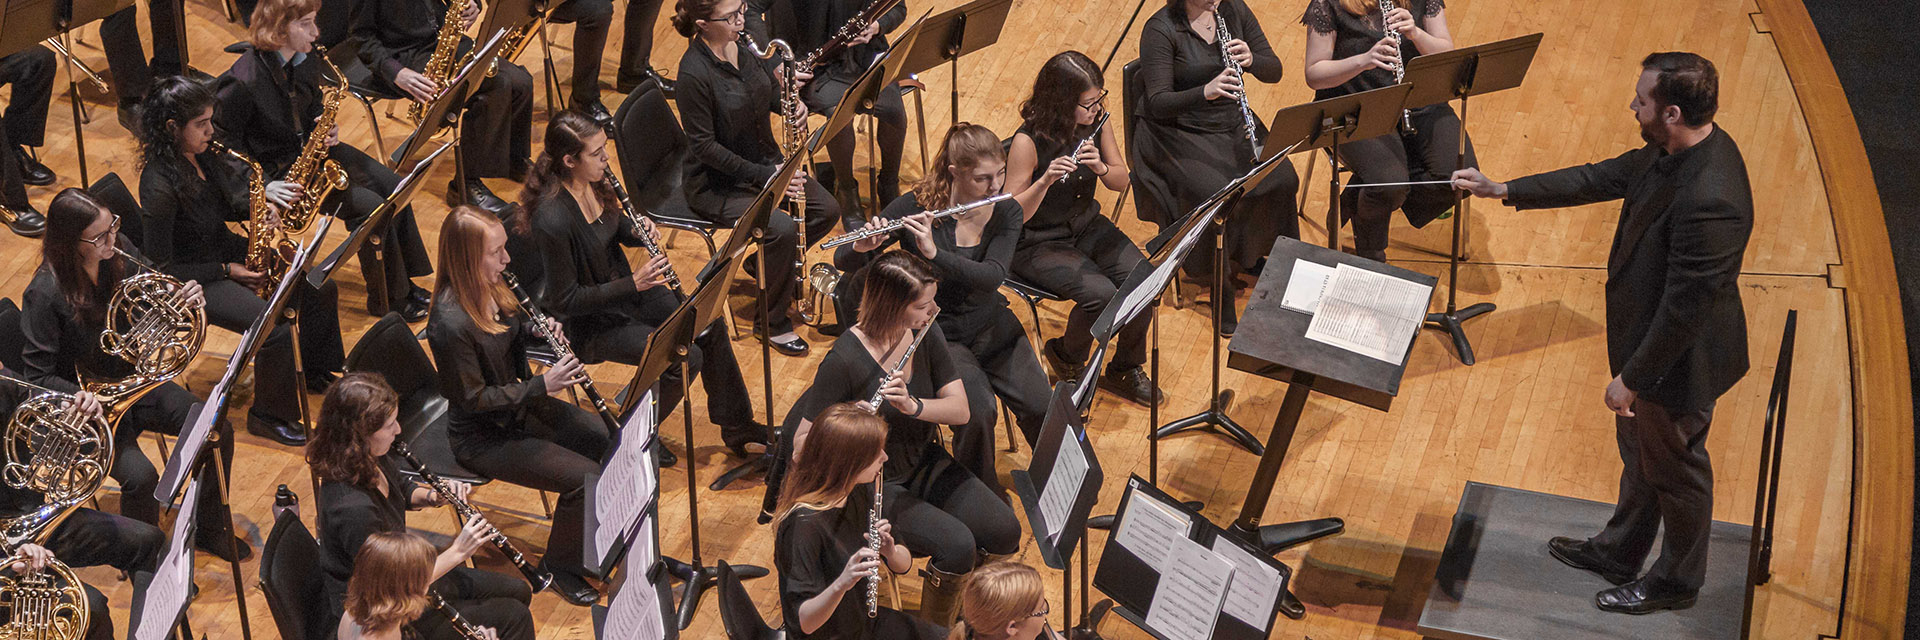 OSU Wind Symphony conducted by Olin Hannum